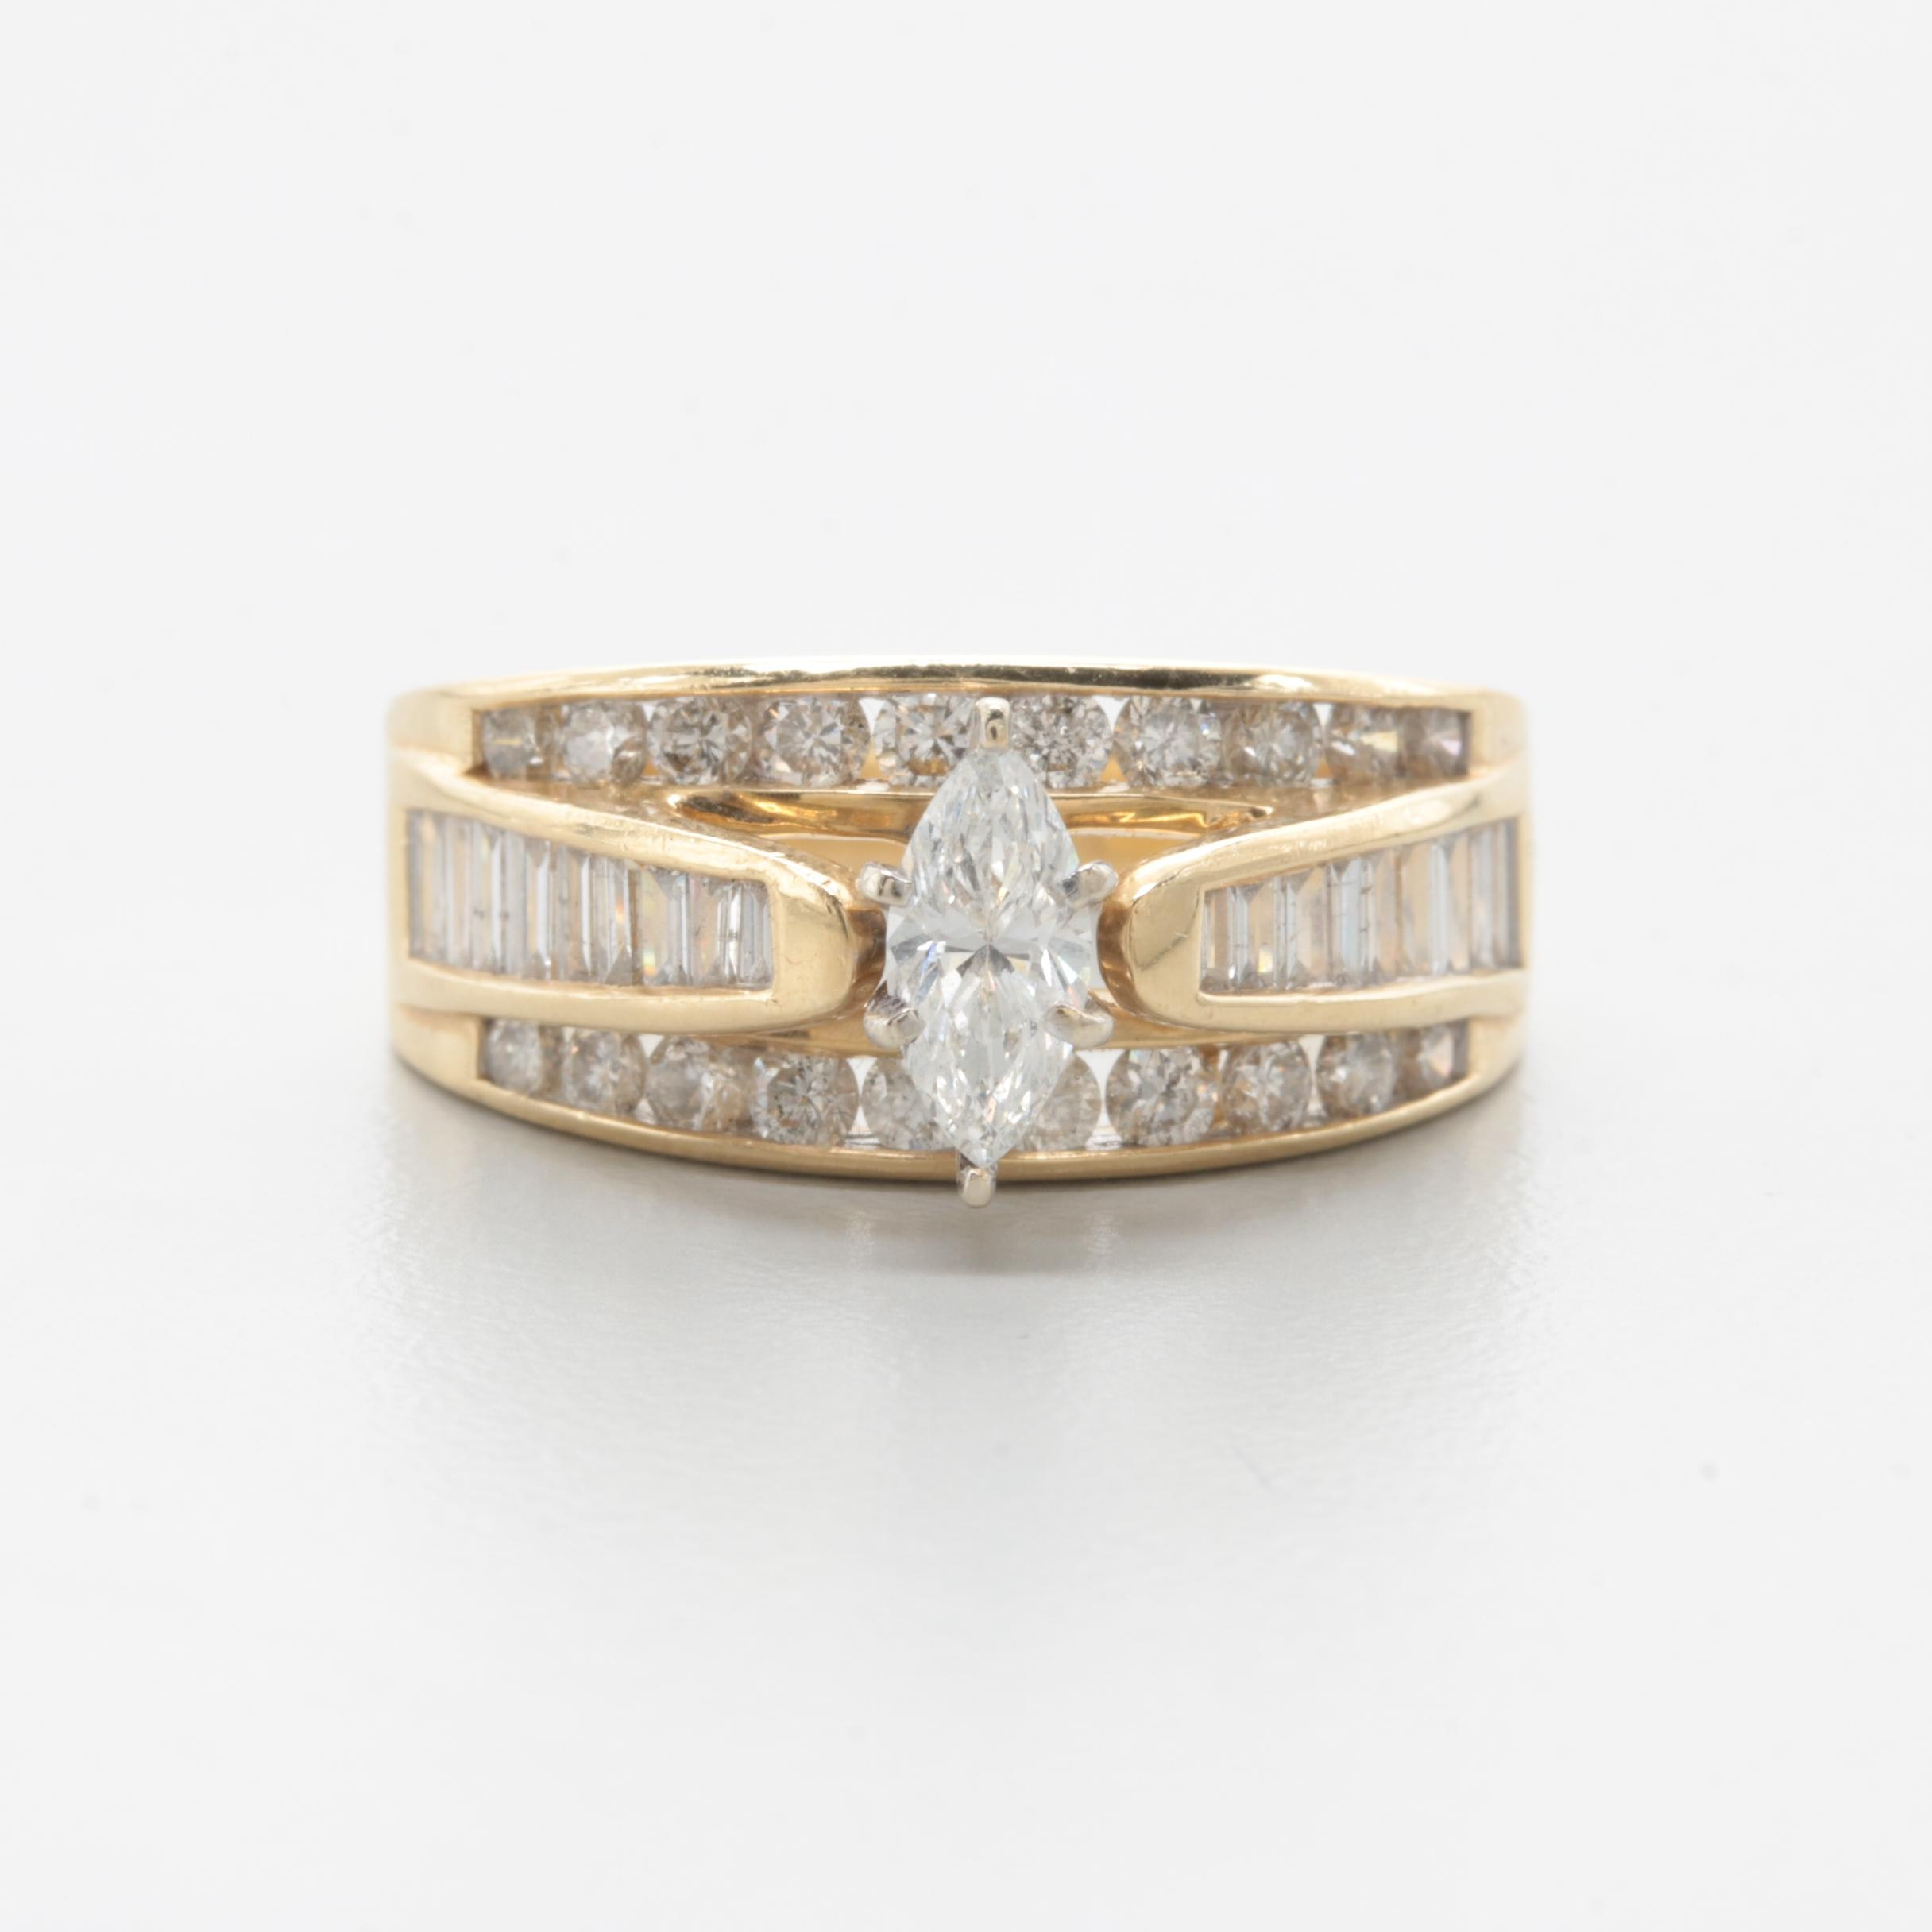 14K Yellow Gold 1.31 CTW Diamond Ring